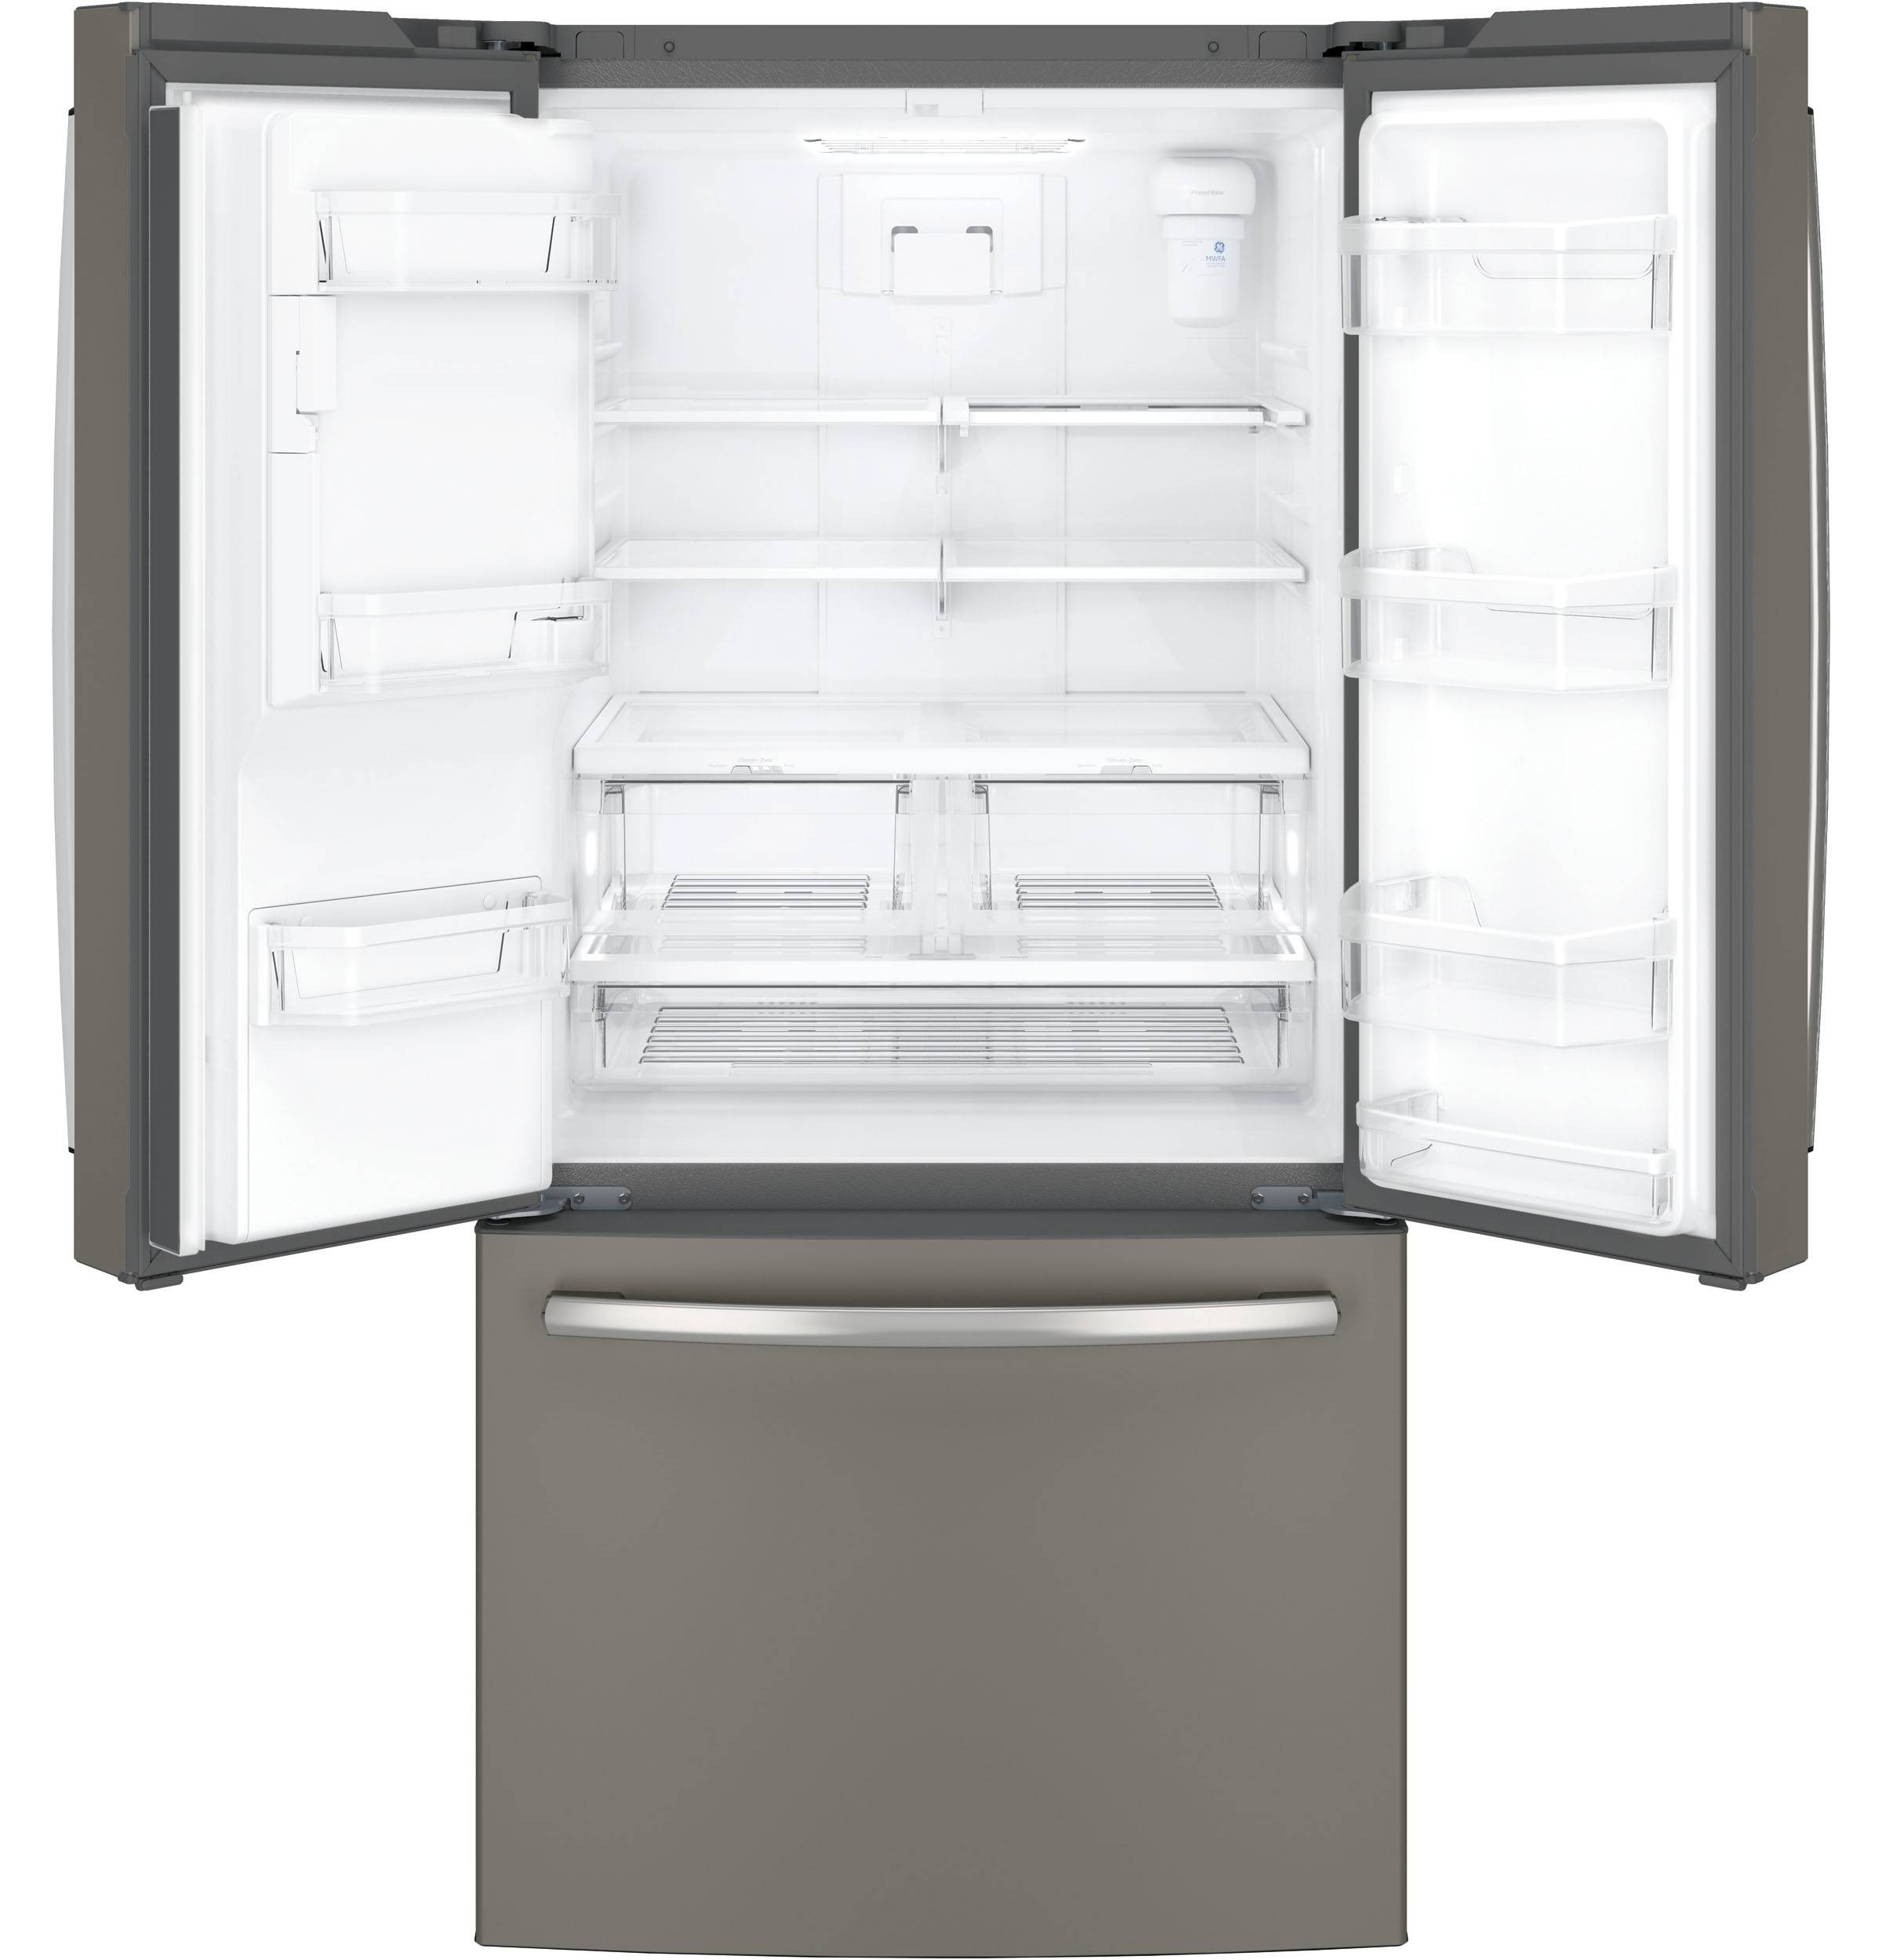 Model: GFE24JMKES | GE GE® ENERGY STAR® 23.7 Cu. Ft. French-Door Refrigerator